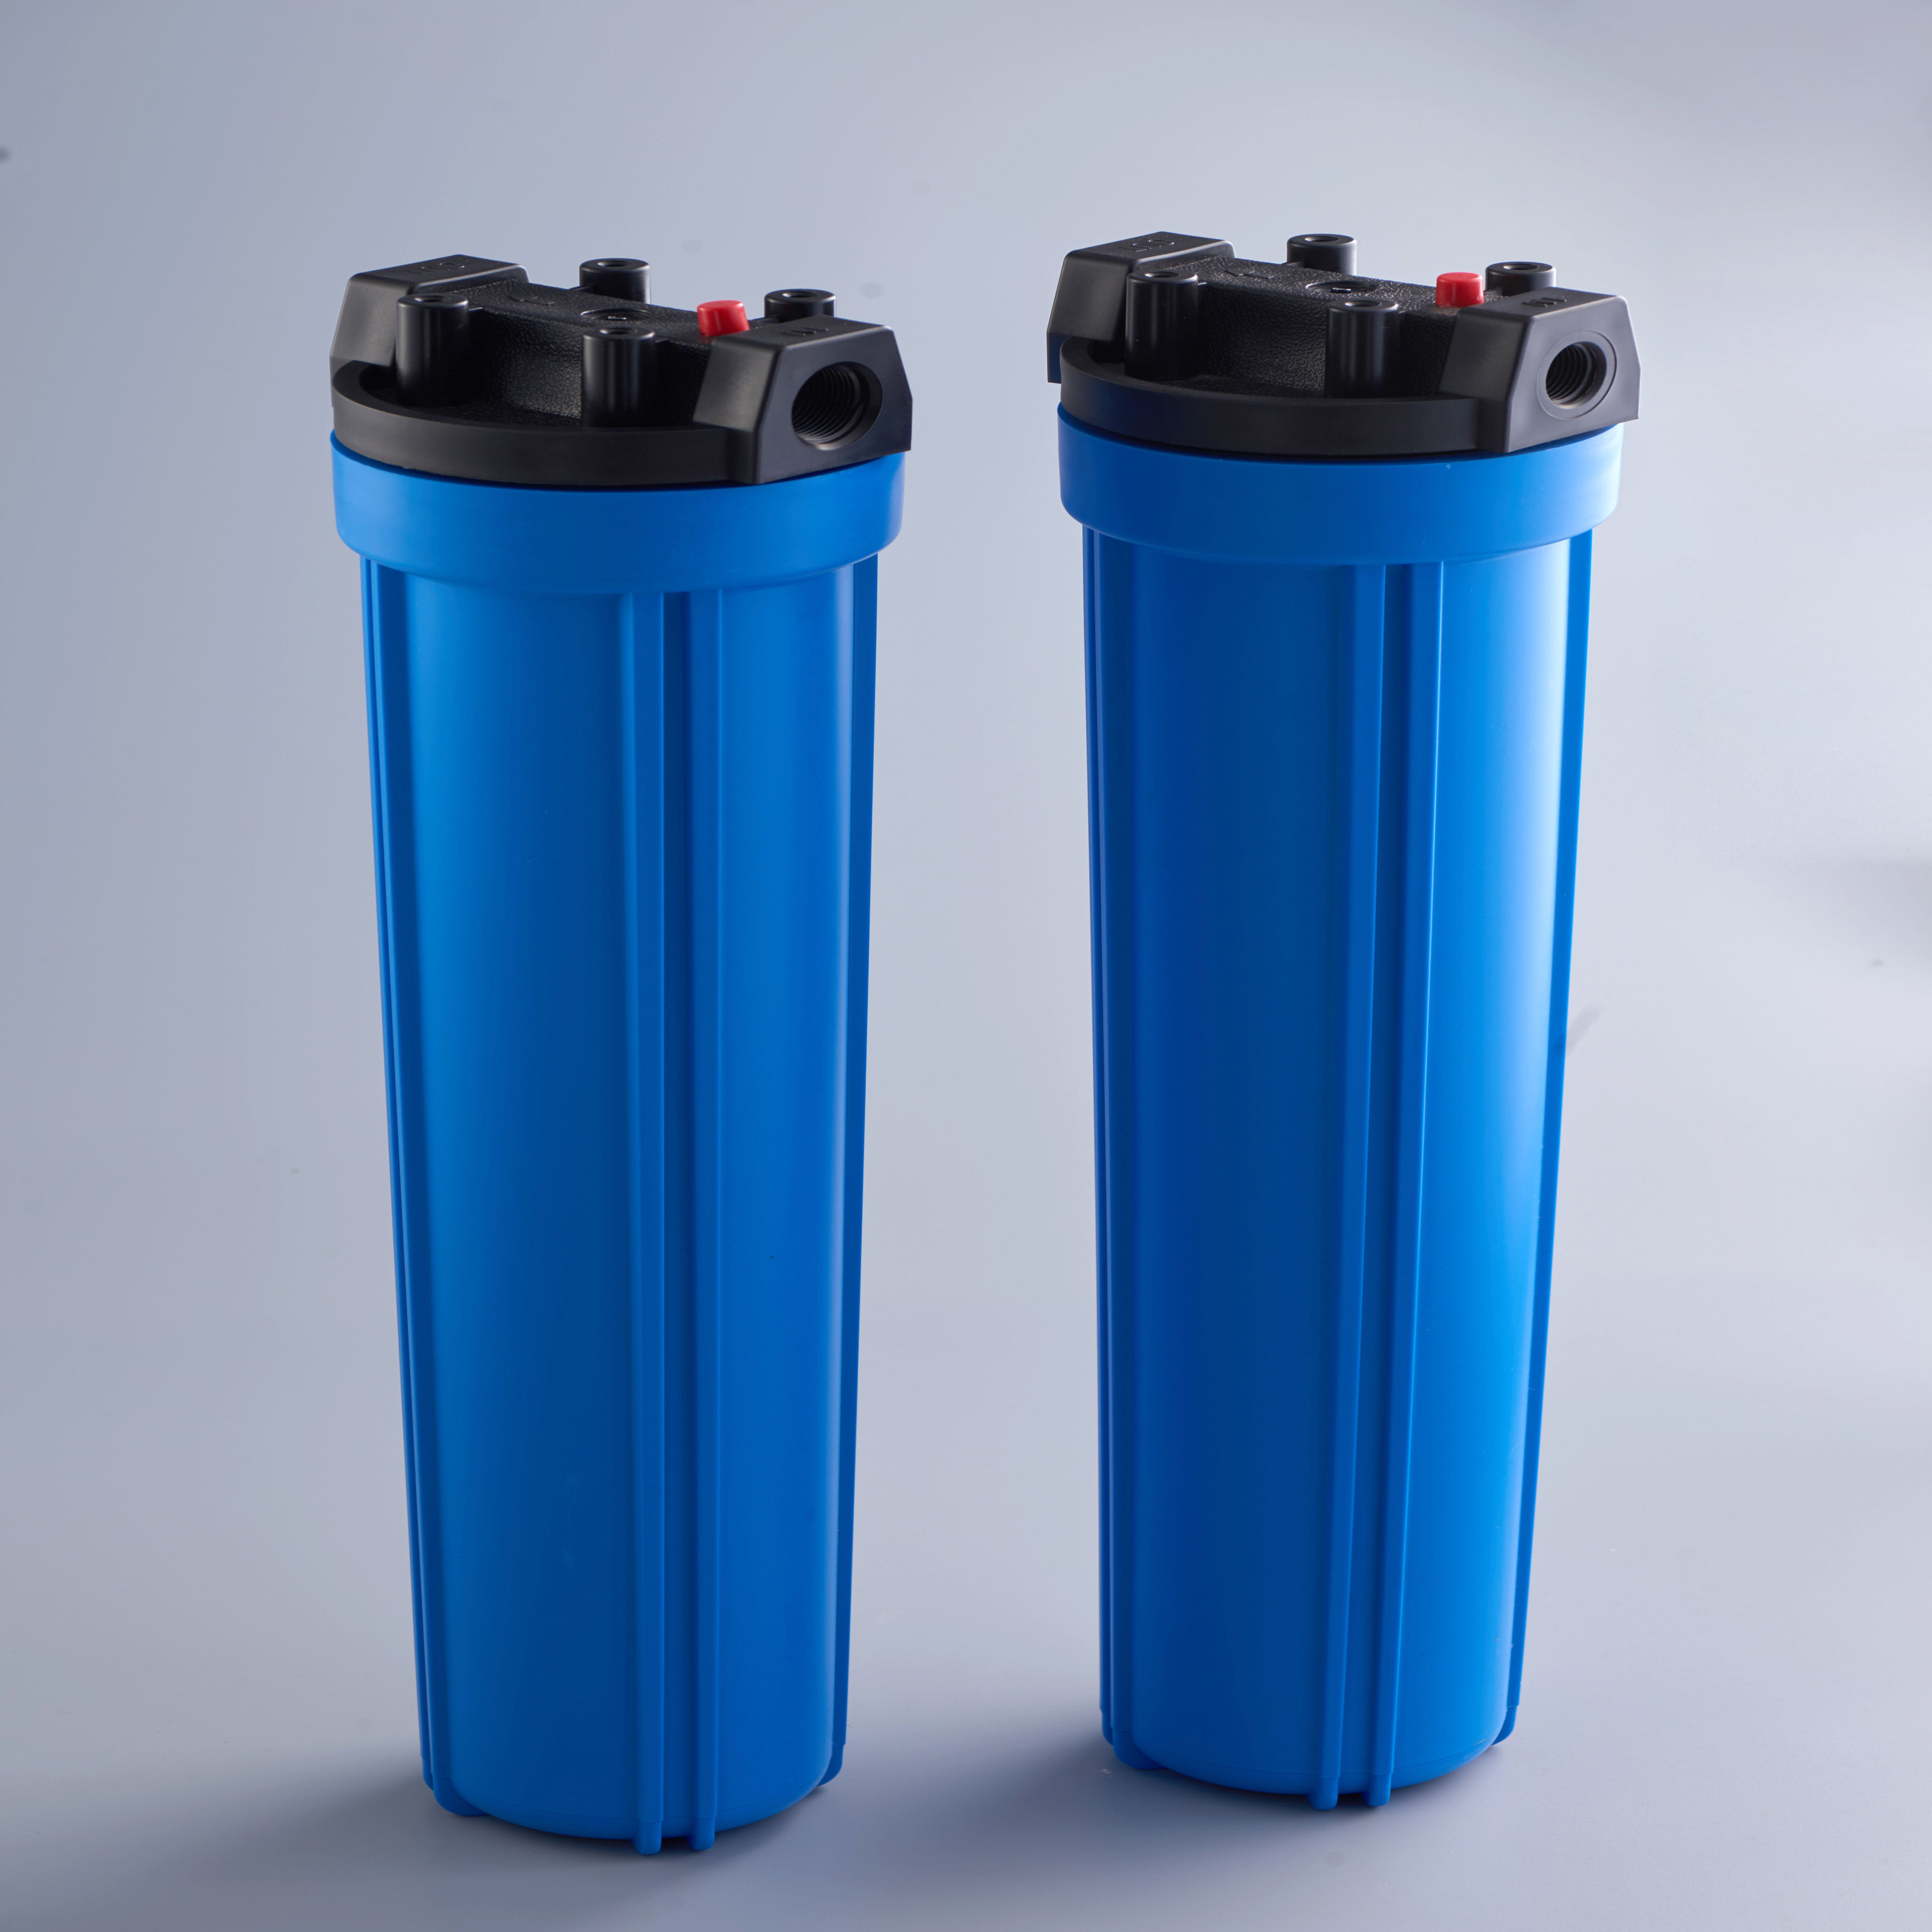 20 Inch Blue Jumbo Water Filter Housing Water Filter Parts RO SYSTEM